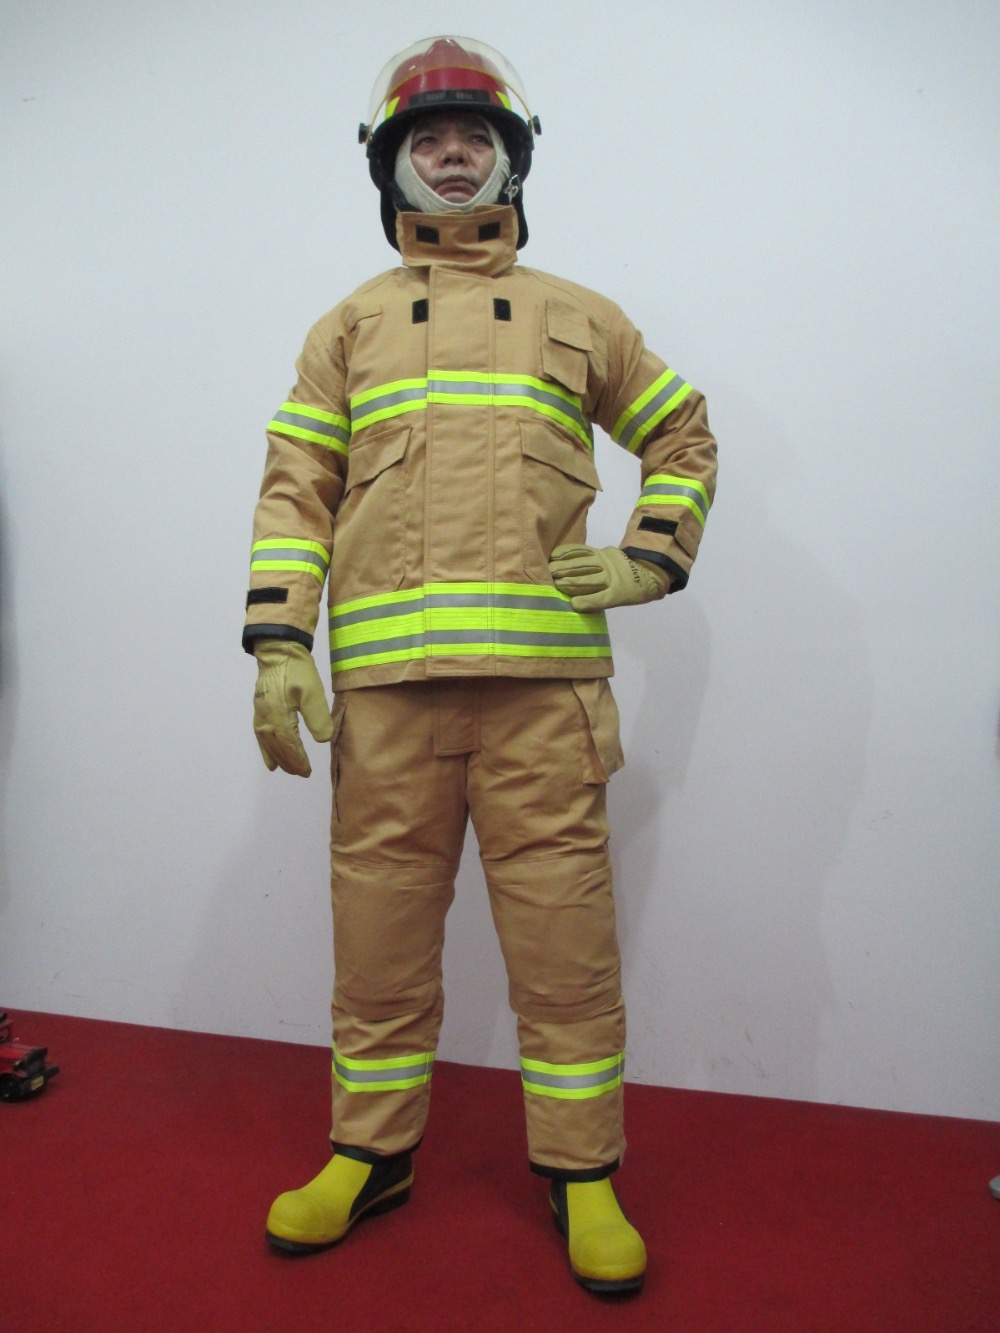 Fireman garment used for fire fighting yellow color Aramid fabric